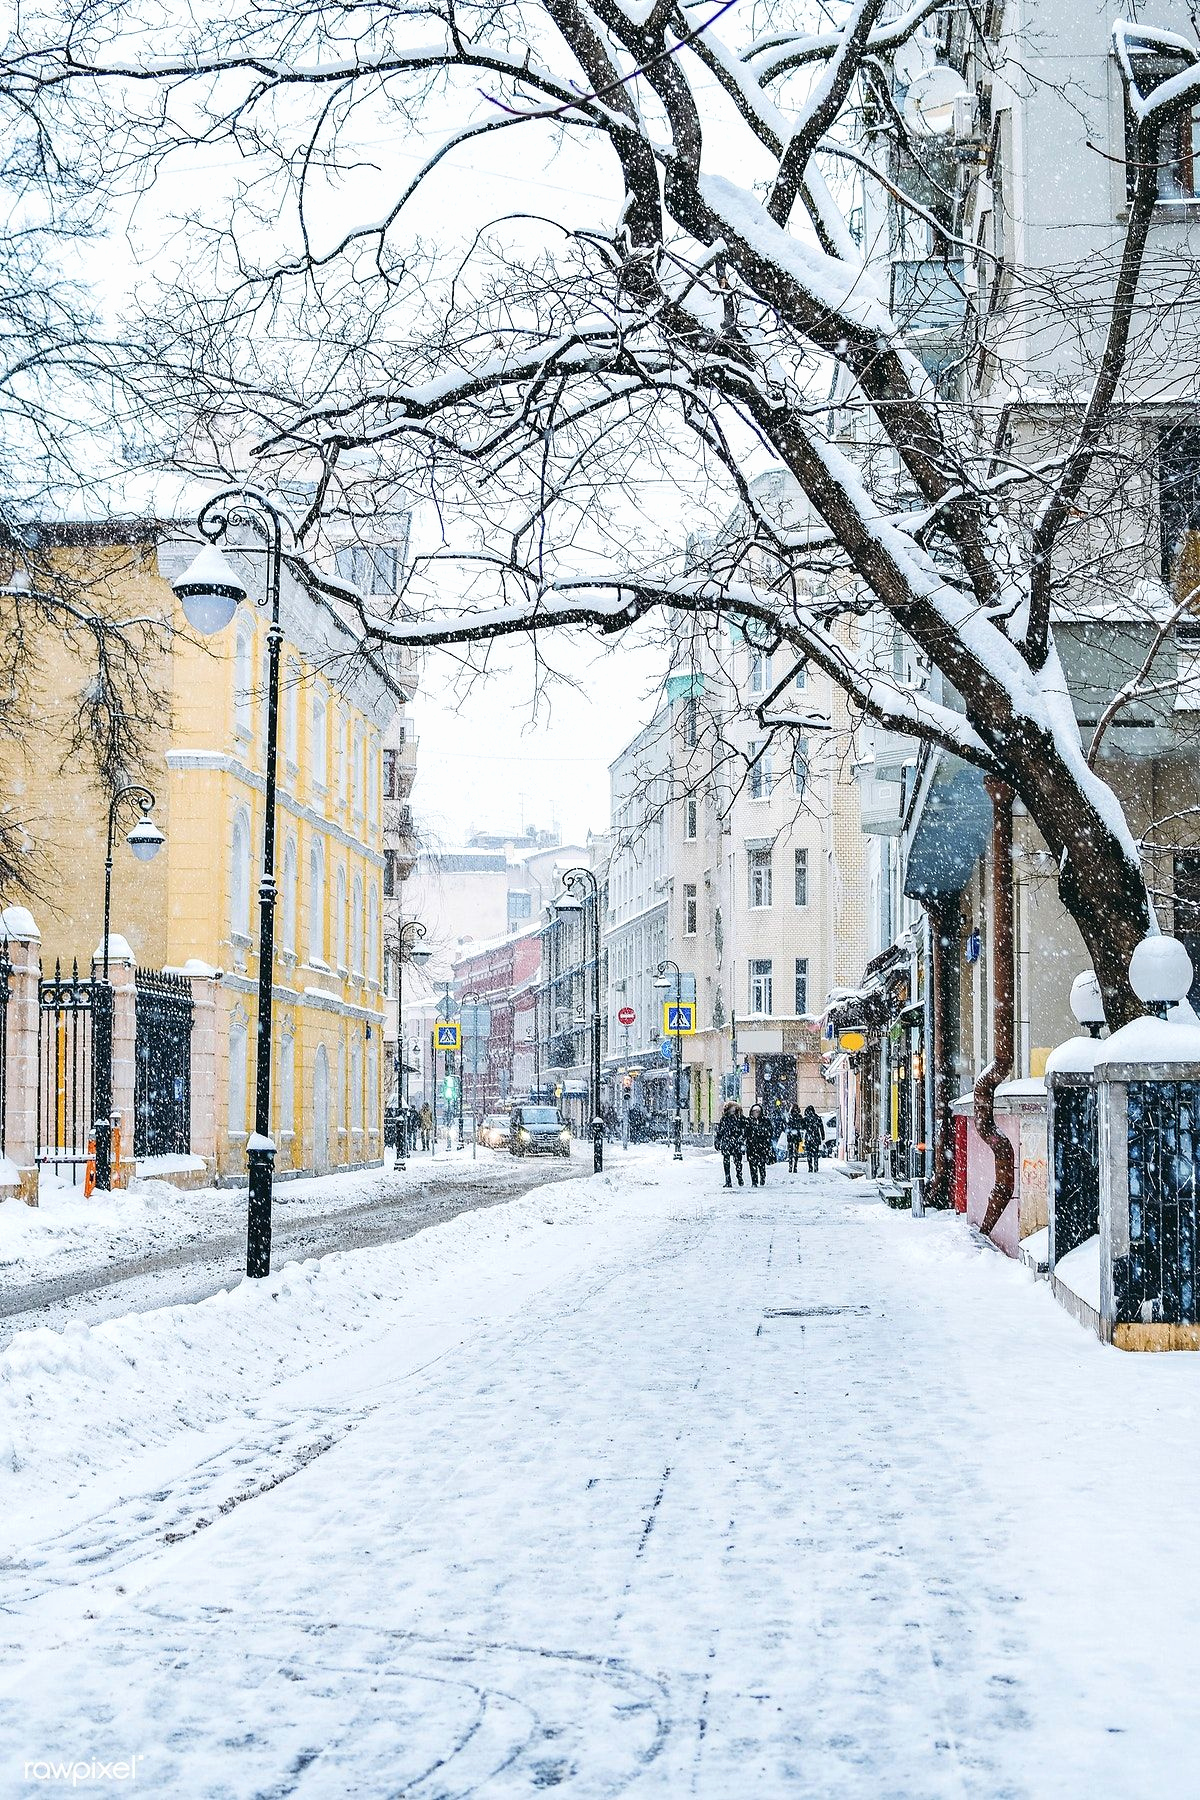 Www Coolphotos De Kostenlos Luxus Moscow City In Winter Free Image by Rawpixel